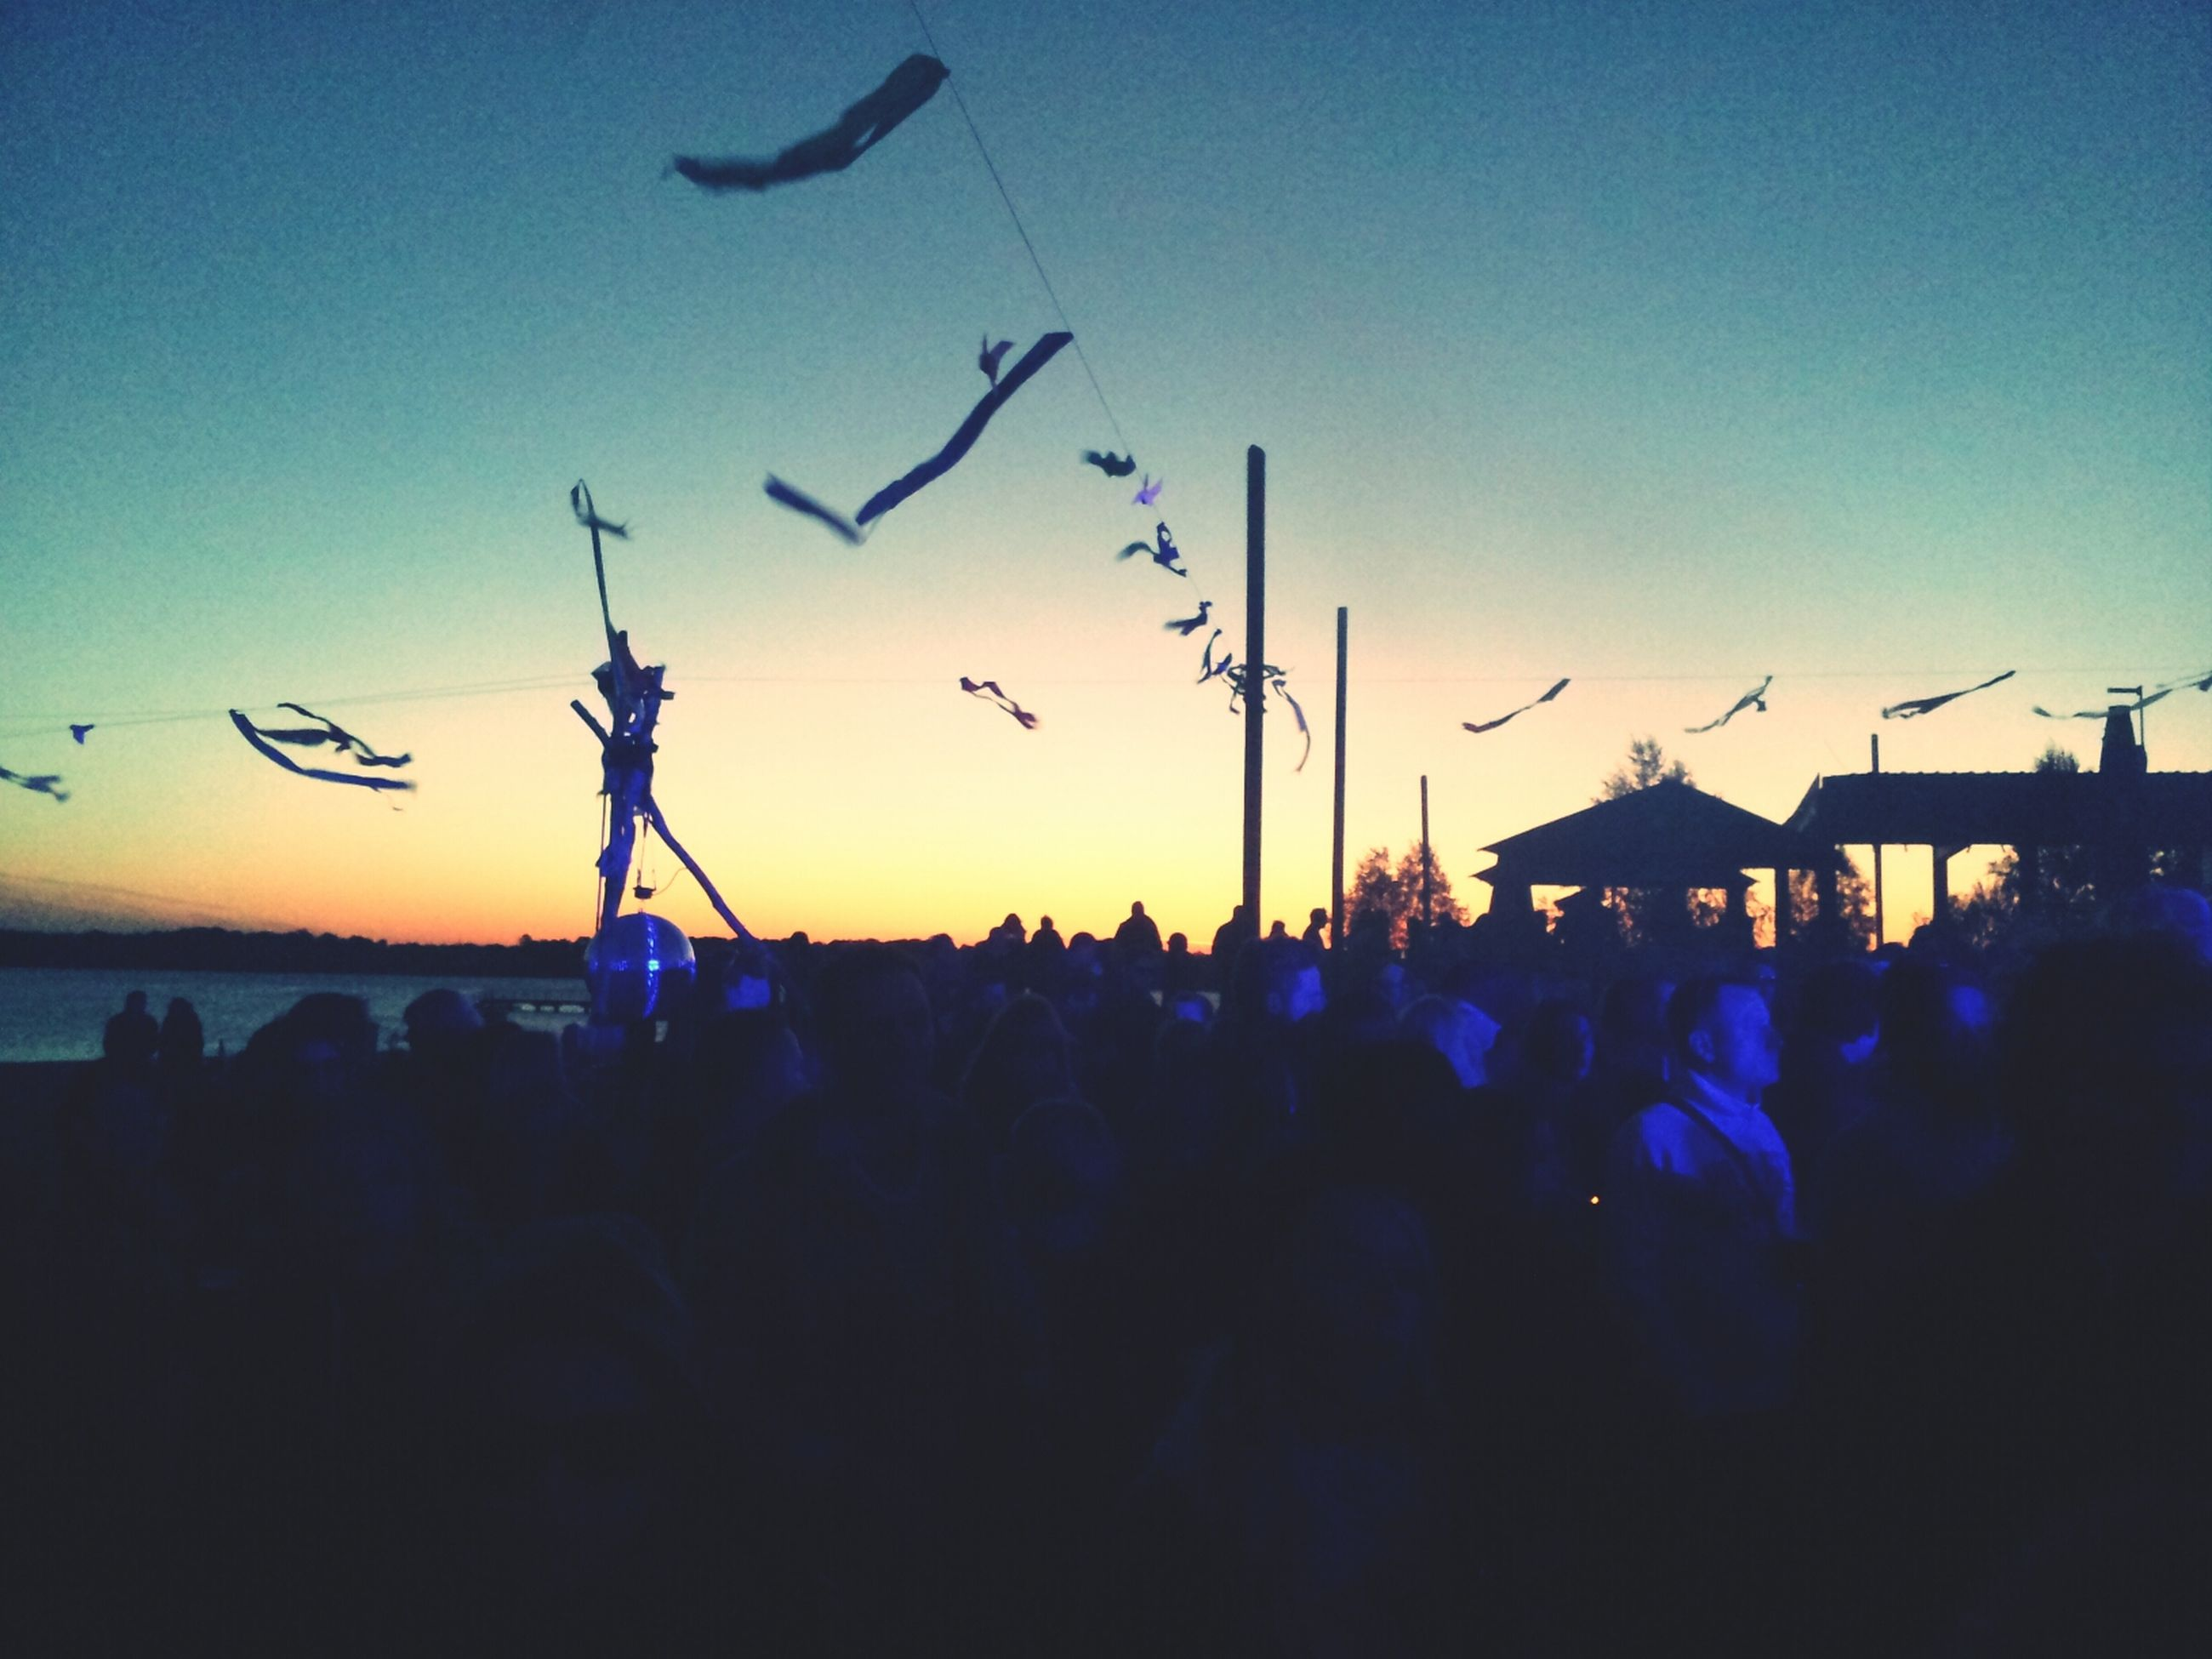 silhouette, sunset, flying, large group of people, clear sky, bird, sky, blue, dusk, flock of birds, copy space, animal themes, animals in the wild, wildlife, outdoors, built structure, mid-air, crowd